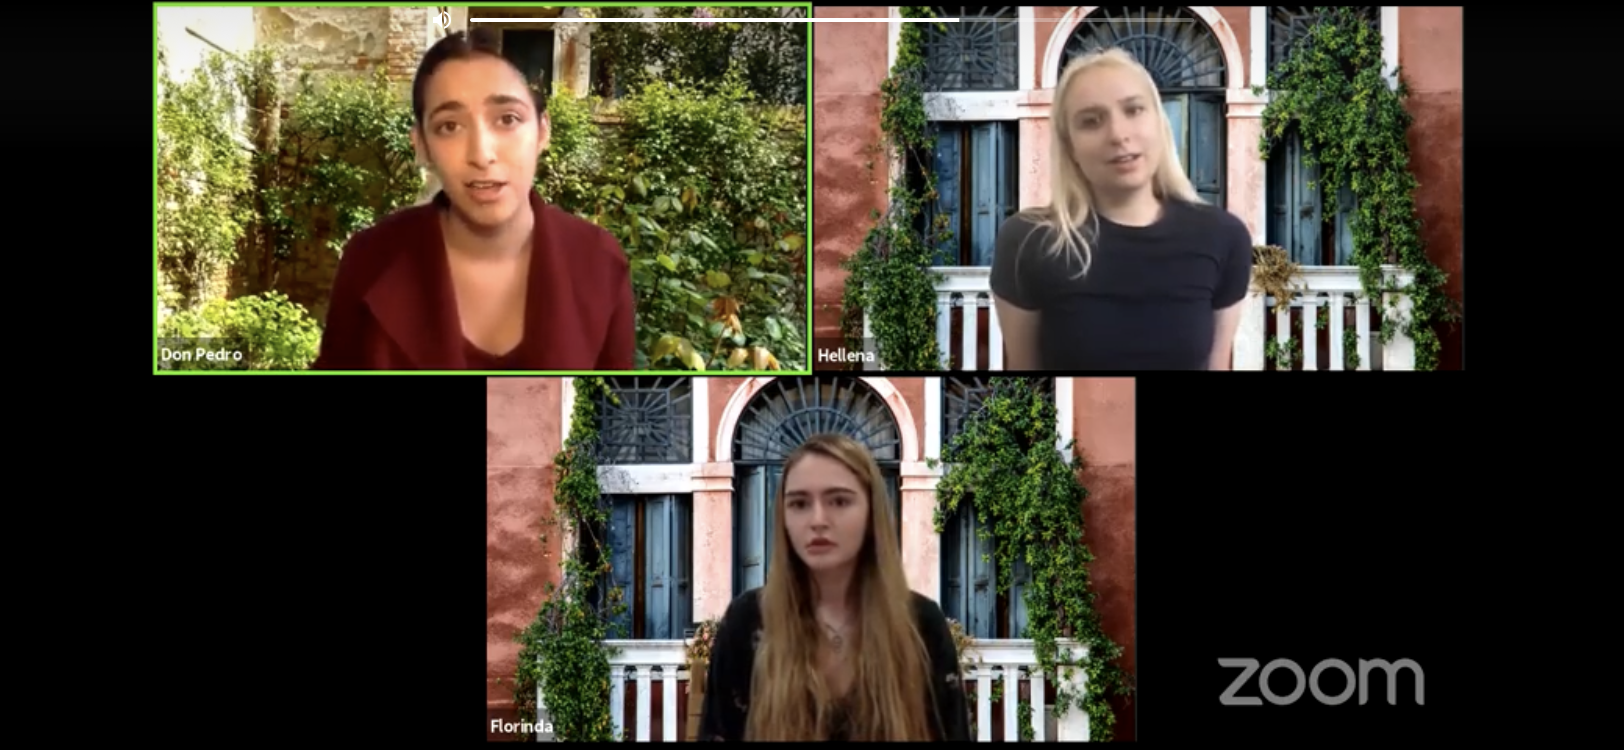 "Three separate Zoom screens shared on one screen, each with an outdoor backdrop with ivy, character in top row, left to right Don Pedro and Hellena, and bottom row Florinda in the online reading of ""The Rover'"